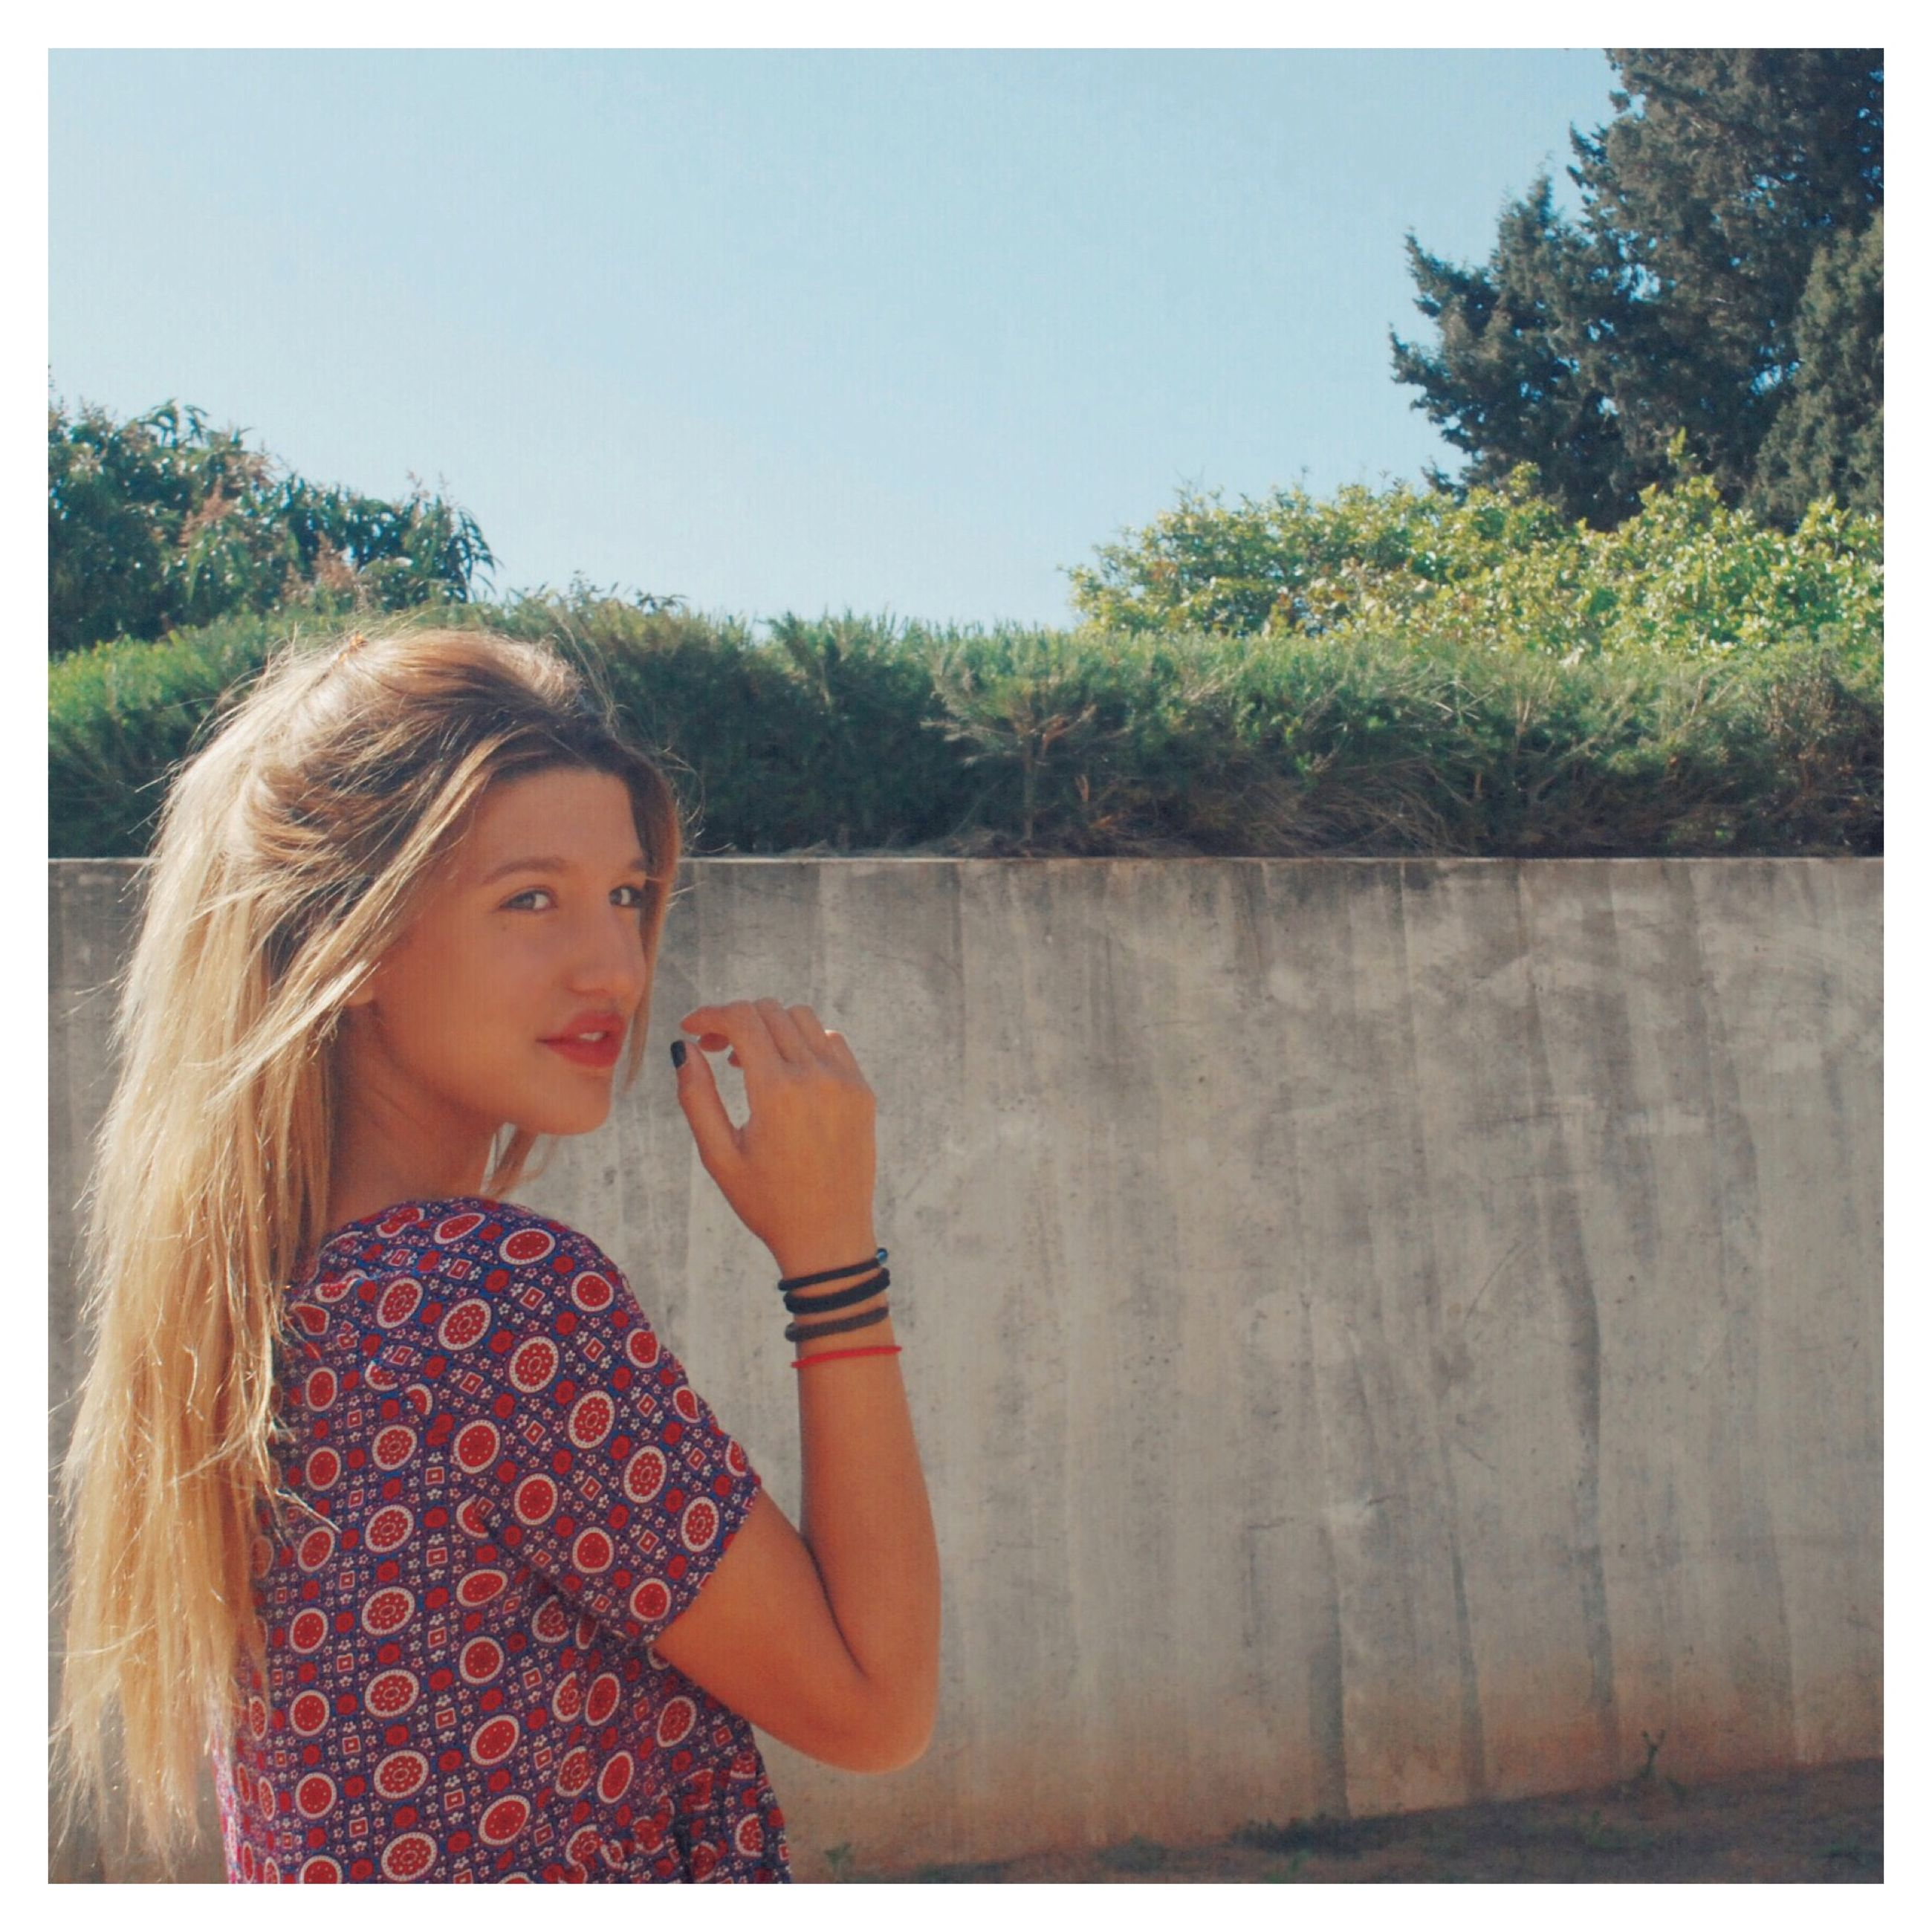 lifestyles, person, leisure activity, young adult, casual clothing, young women, tree, transfer print, long hair, auto post production filter, clear sky, portrait, looking at camera, smiling, standing, blond hair, front view, girls